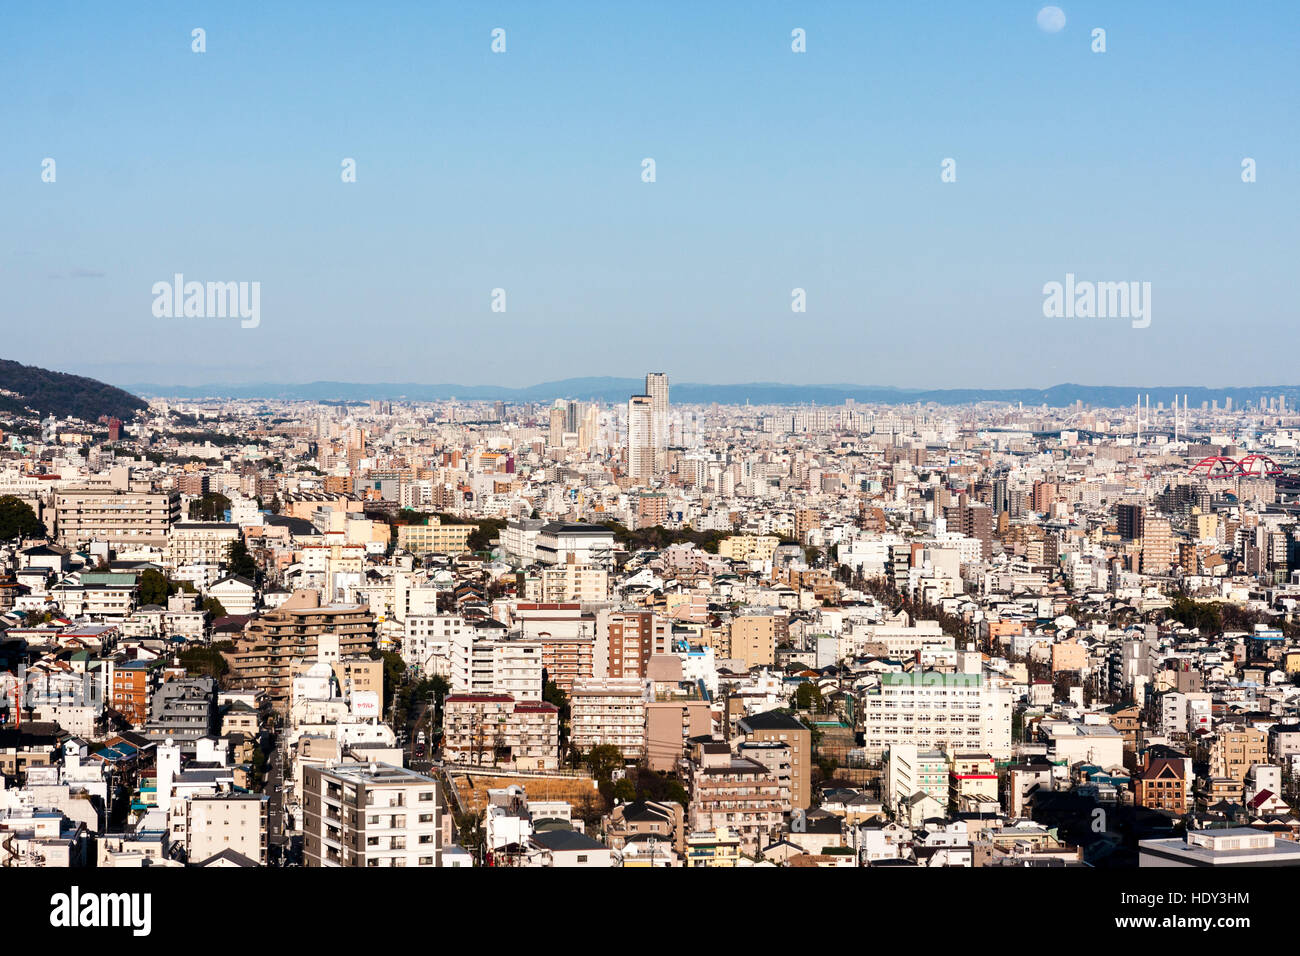 Japan, Kobe. Daytime moon in clear blue sky, seen over Kobe city. High viewpoint, cityscape, endless urban sprawl. - Stock Image